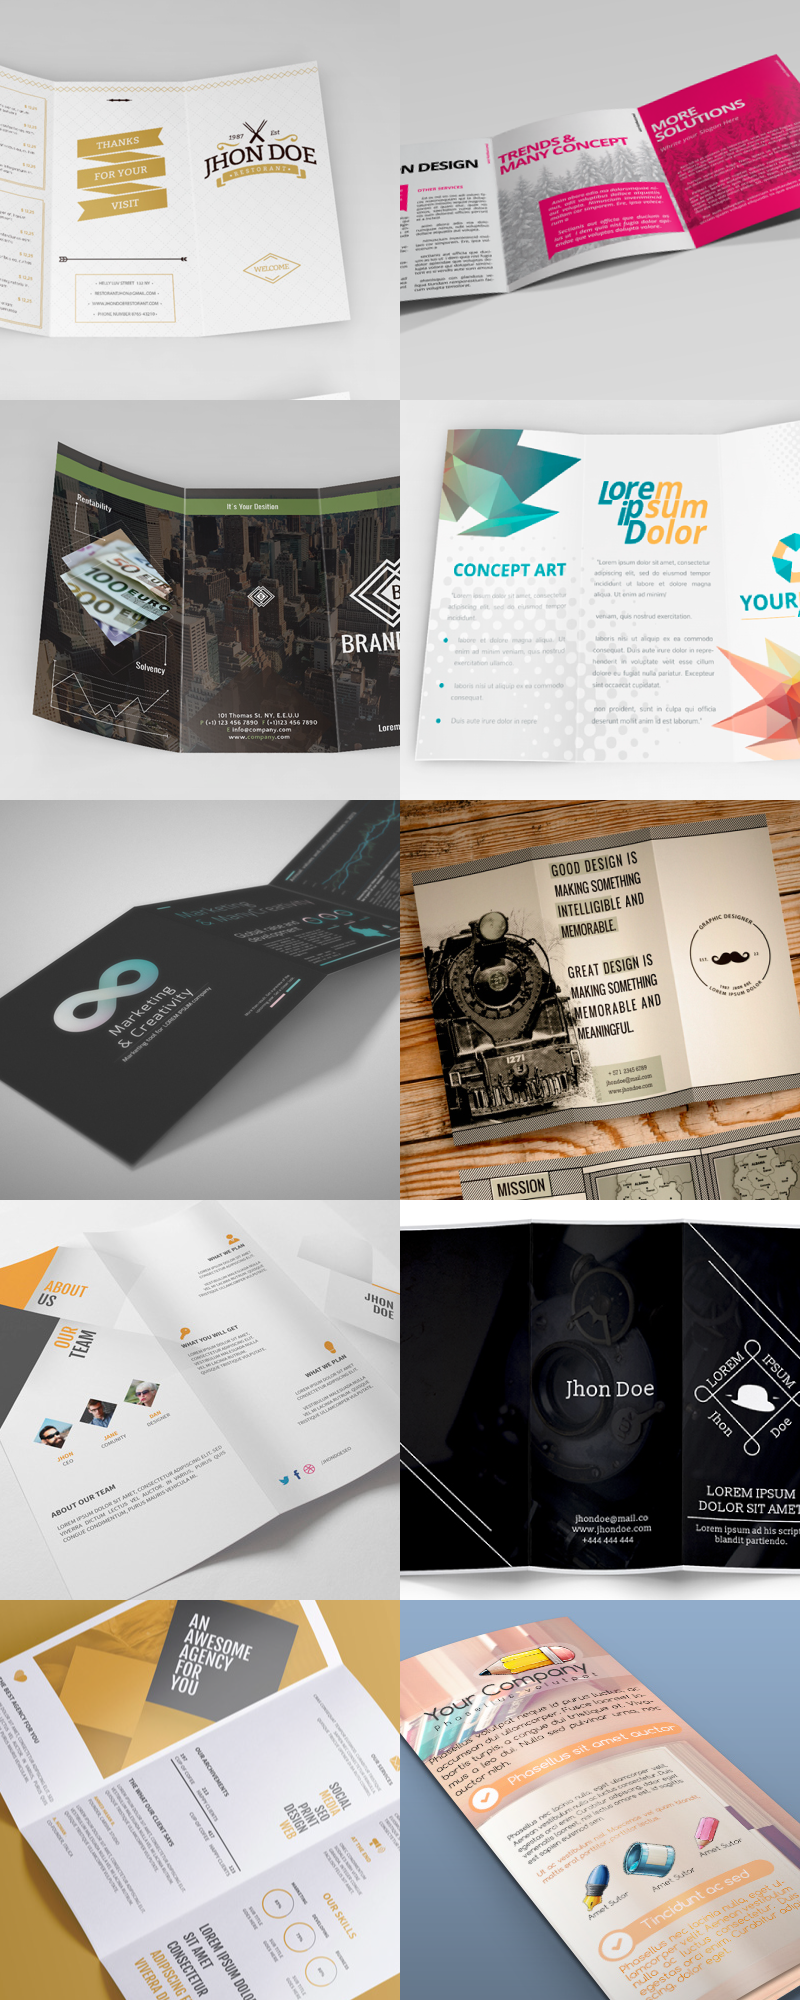 Editable Illustrator Trifold Brochure Templates ByPeople - Editable brochure templates